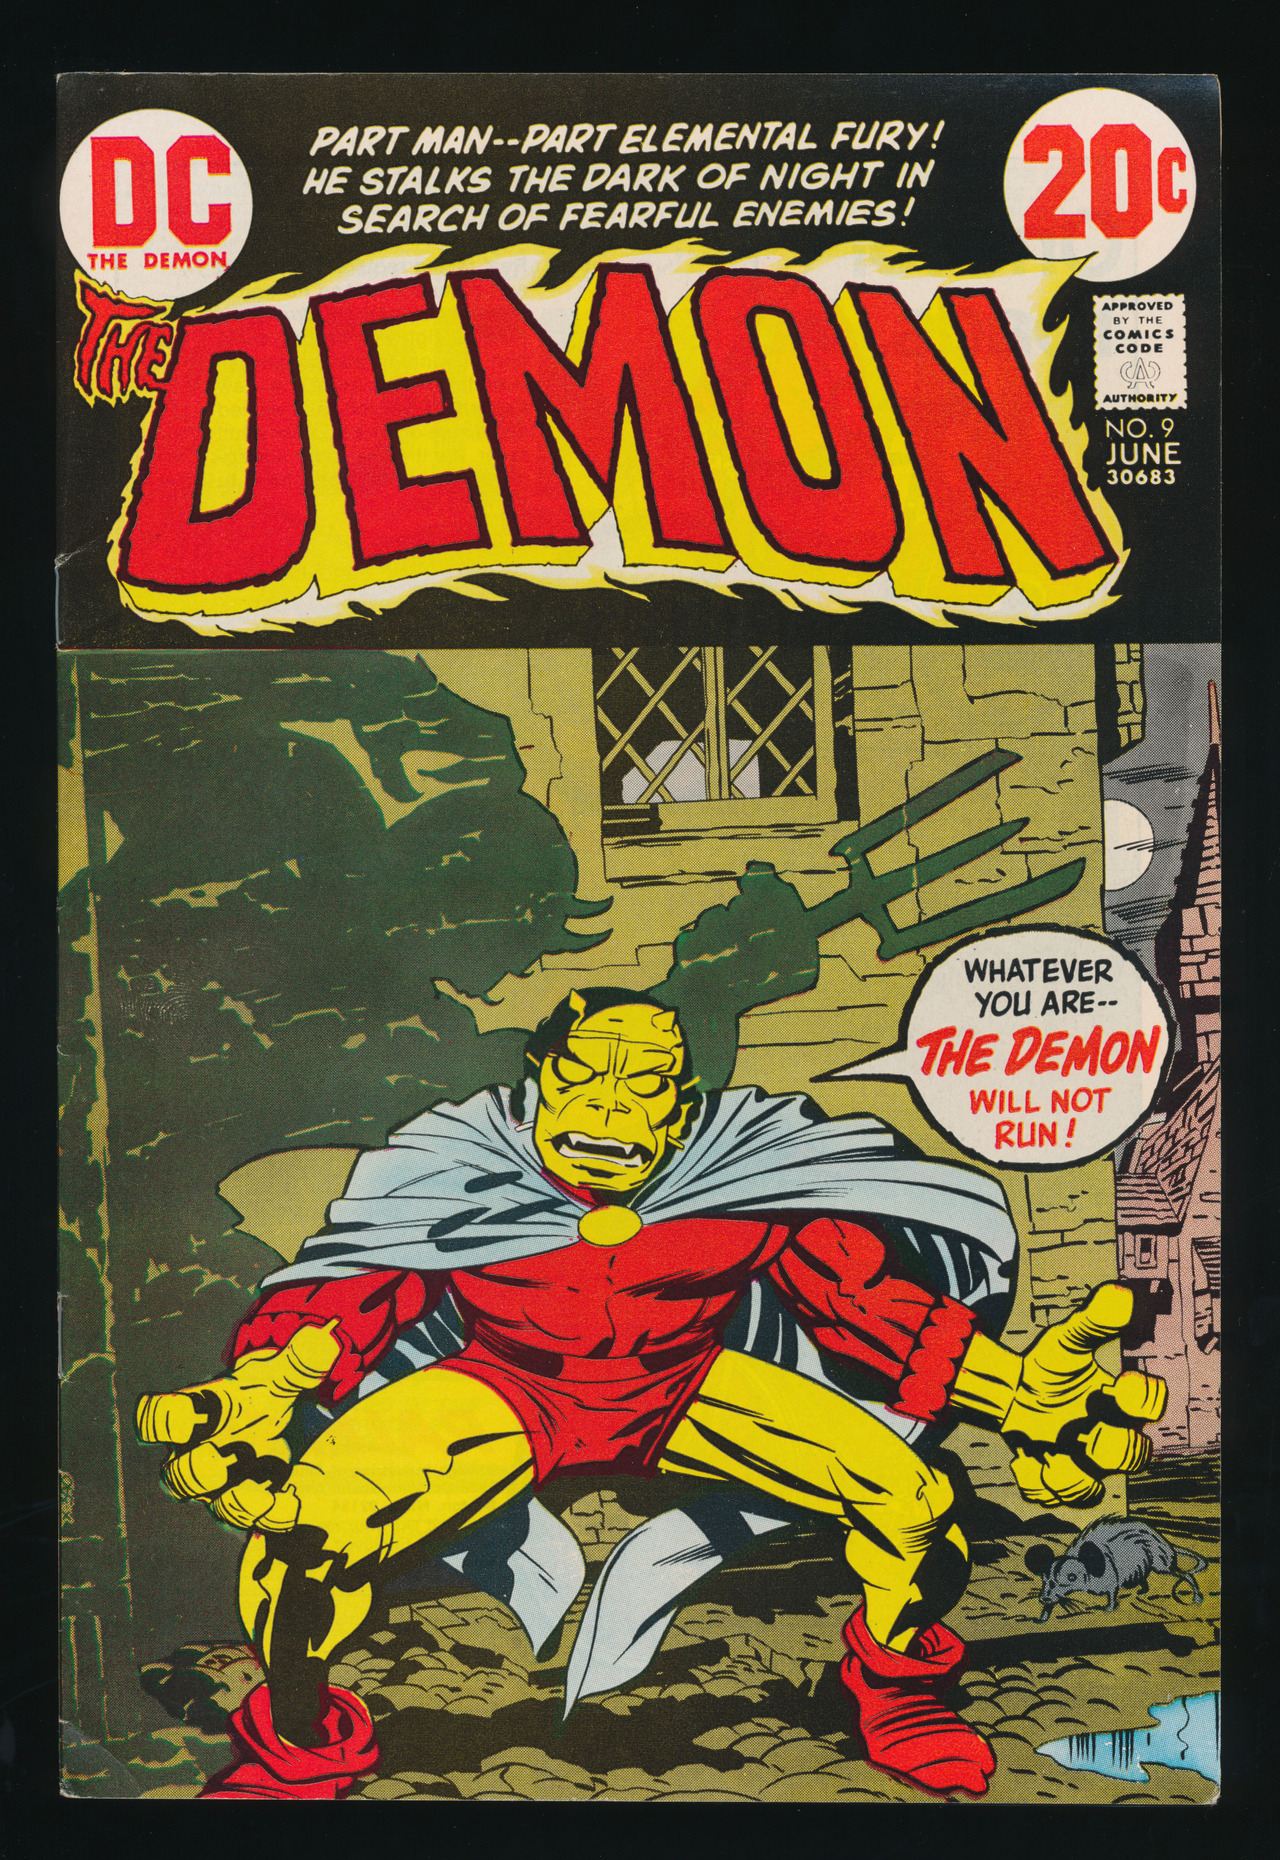 The Demon #9(Jun. 1973)